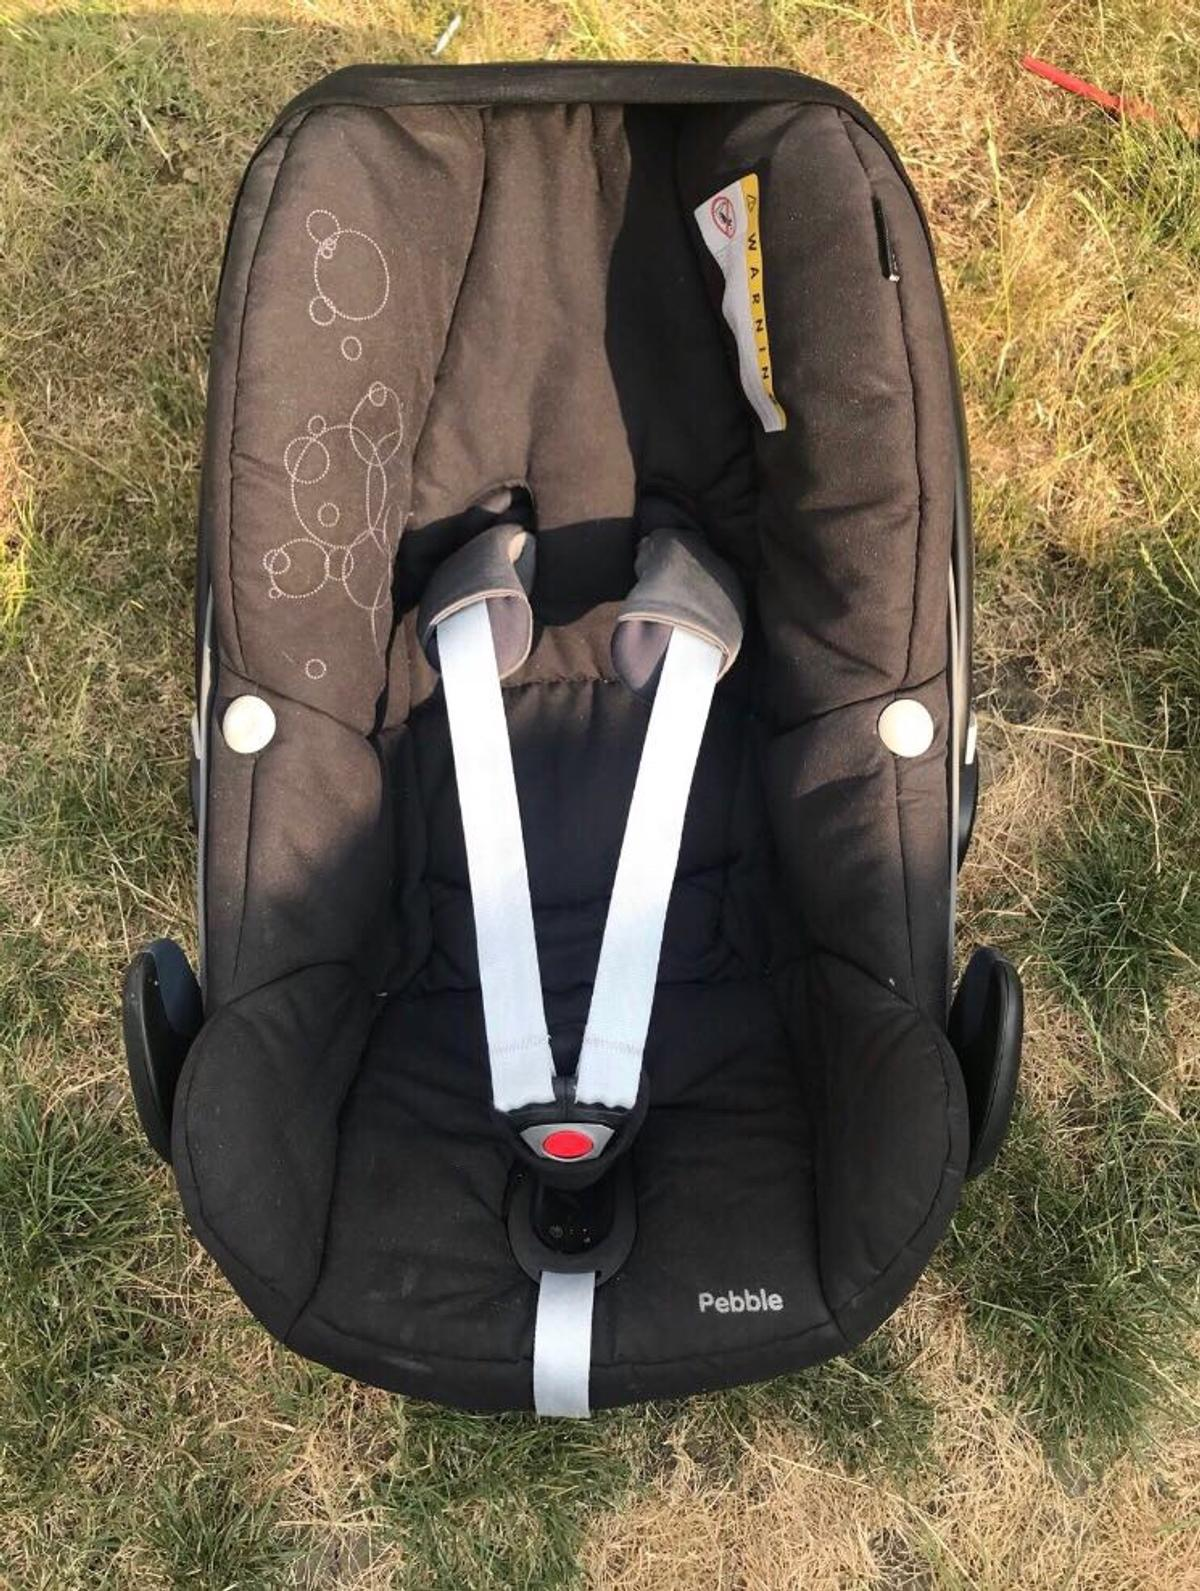 Maxi Cosi Pebble Car Seat in BR8